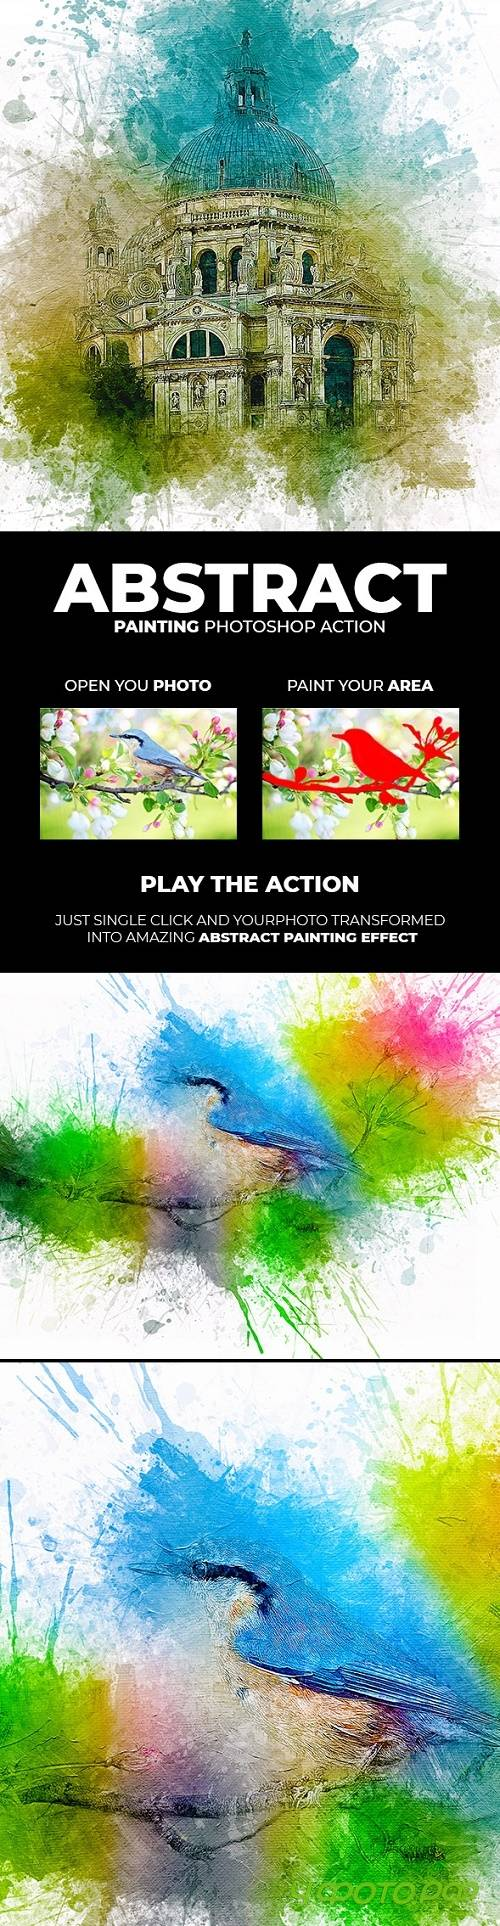 Abstract Painting Photoshop Action 21714322